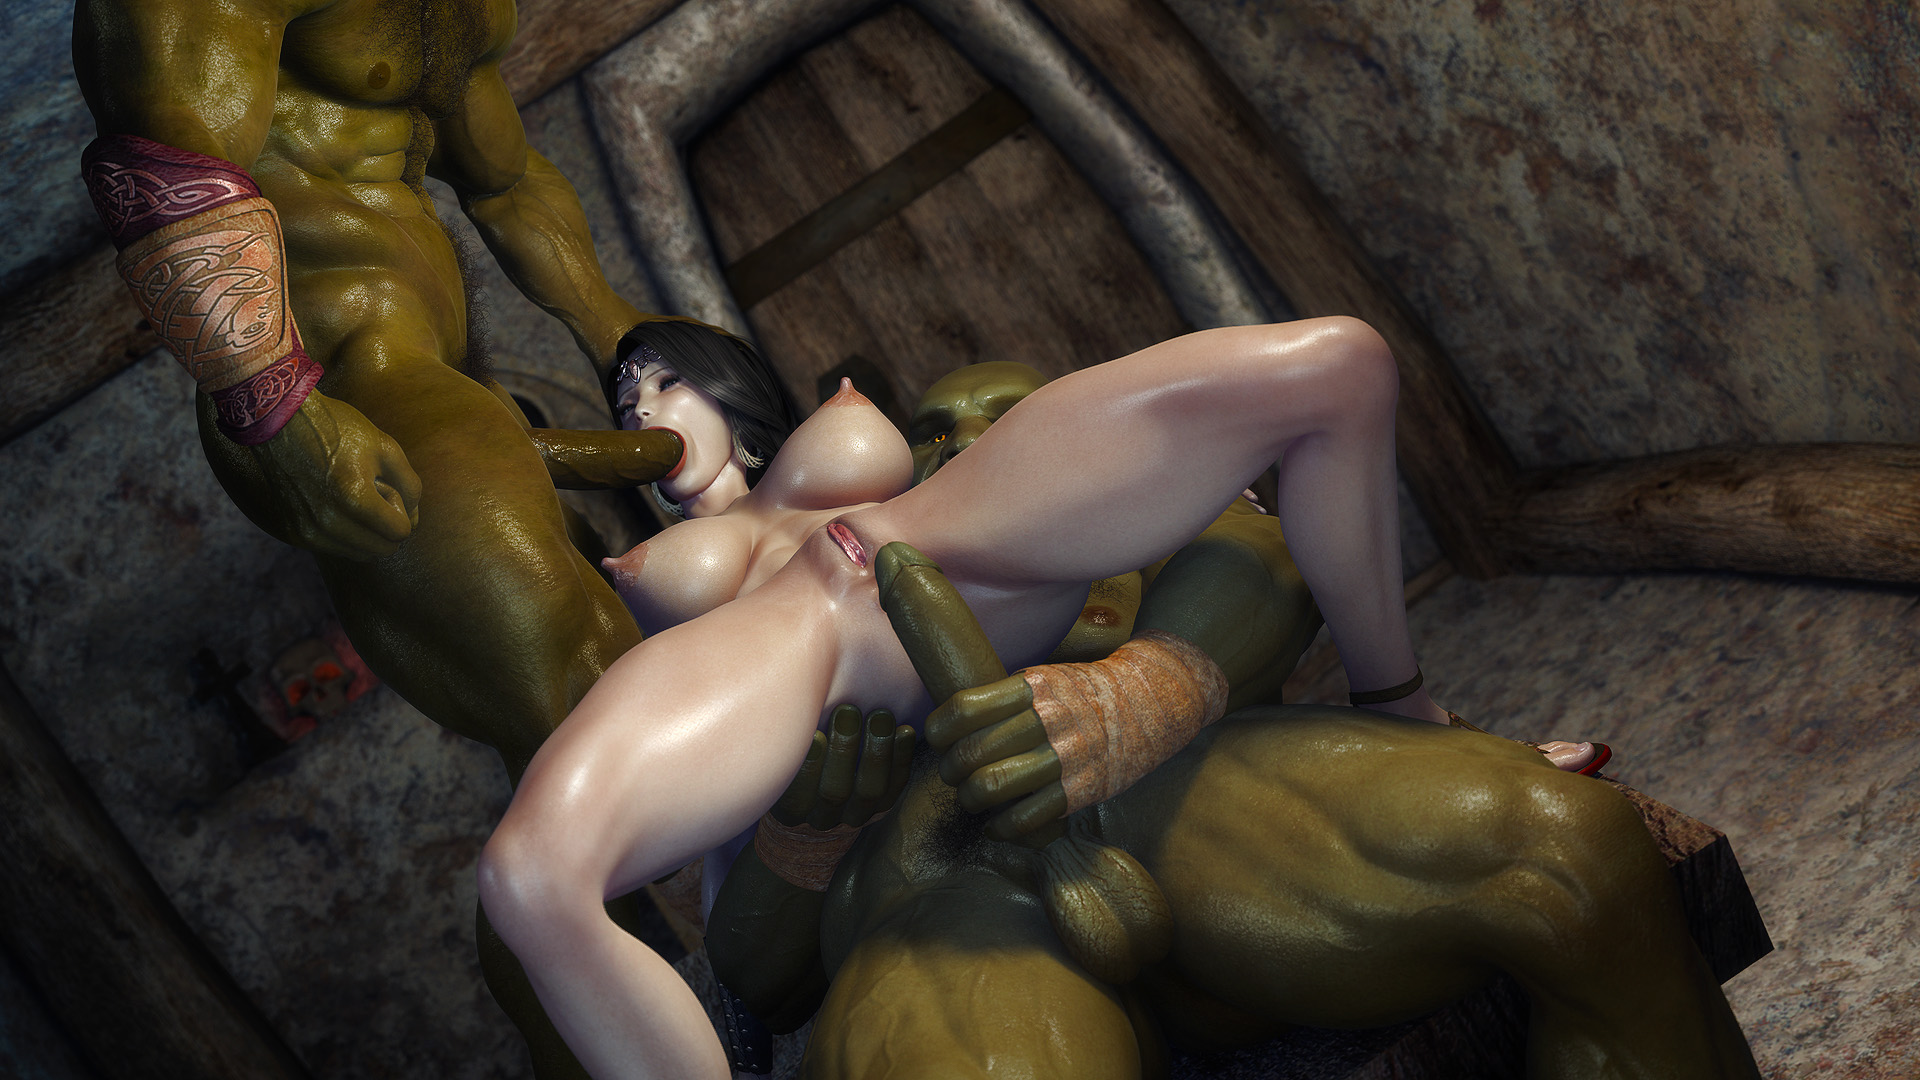 Ogre porn video sexy photos